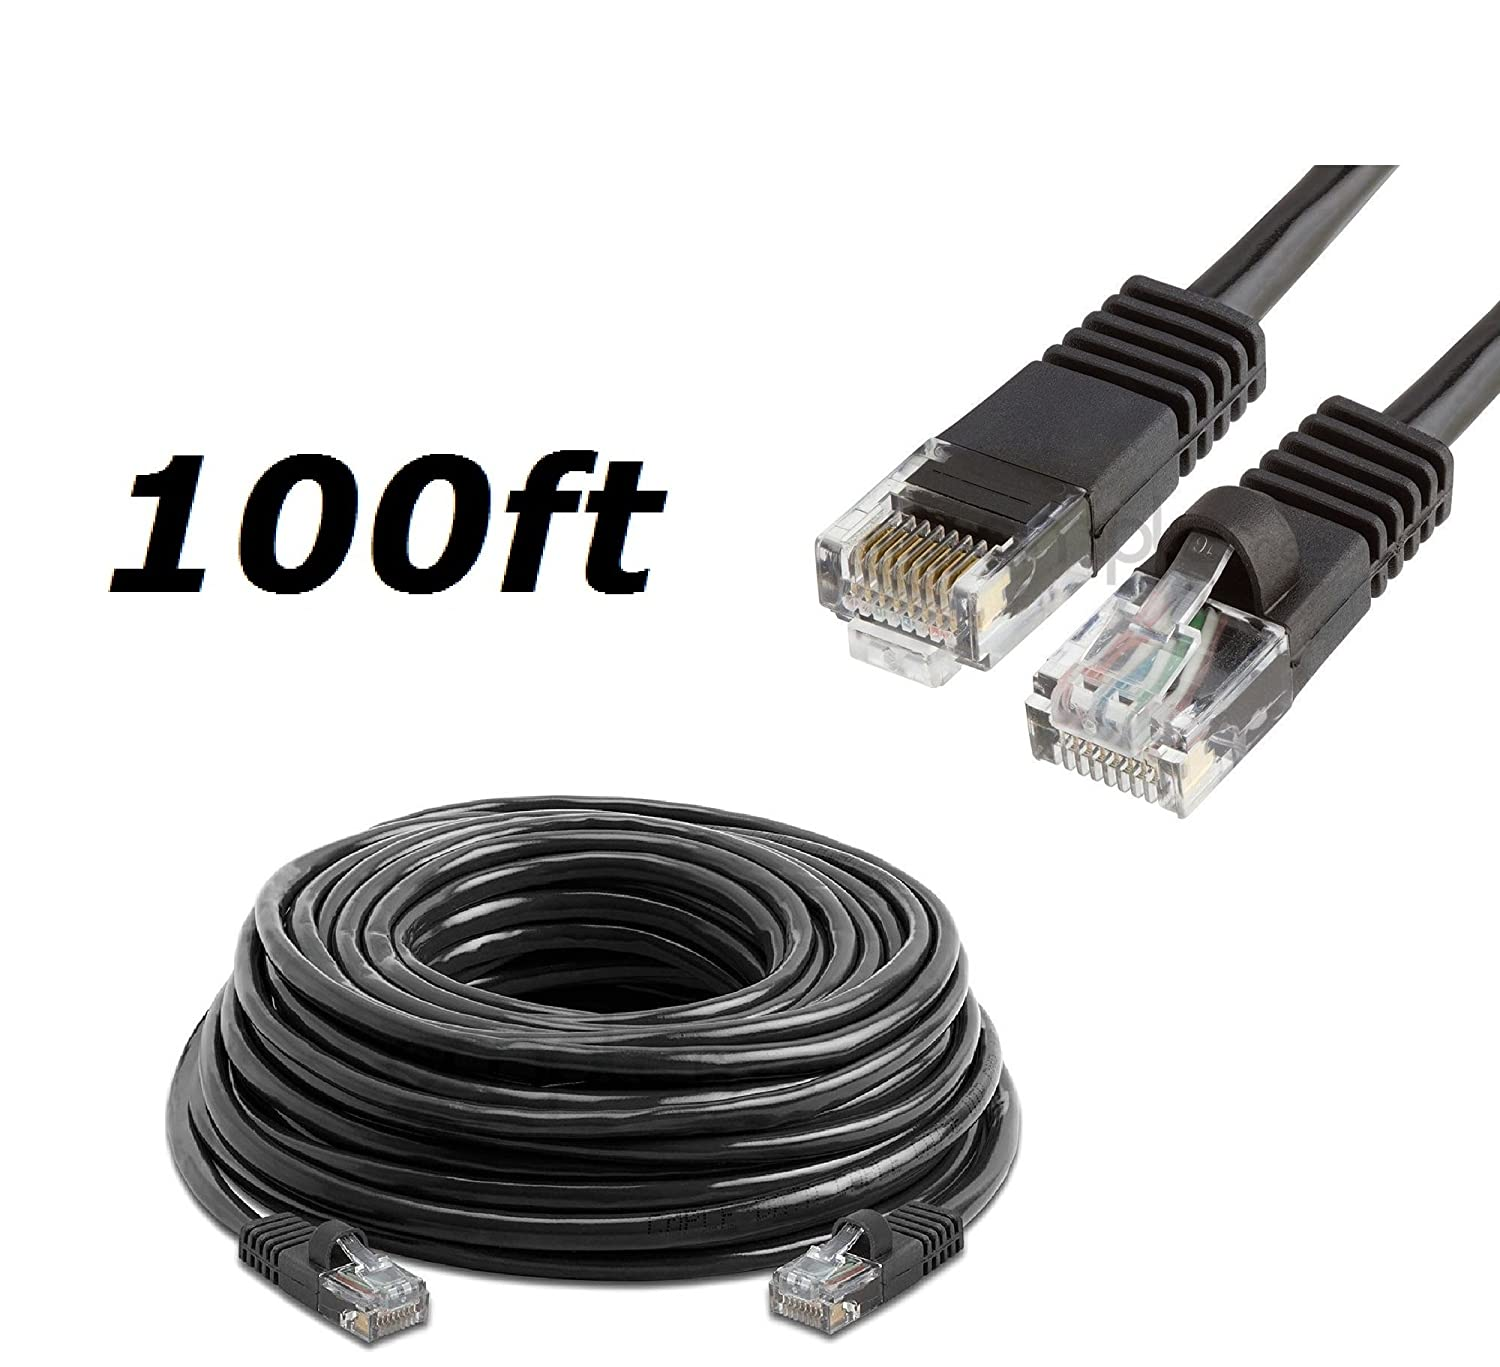 PS3 Xbox 360 High Speed Internet DSL//Cable Internet Mac CableVantage Black 100FT 100 Ft 100 Long CAT5 Enhanced CAT5E RJ45 Patch 350MHz ETHERNET Network Cable for PC Xbox PS2 Laptop